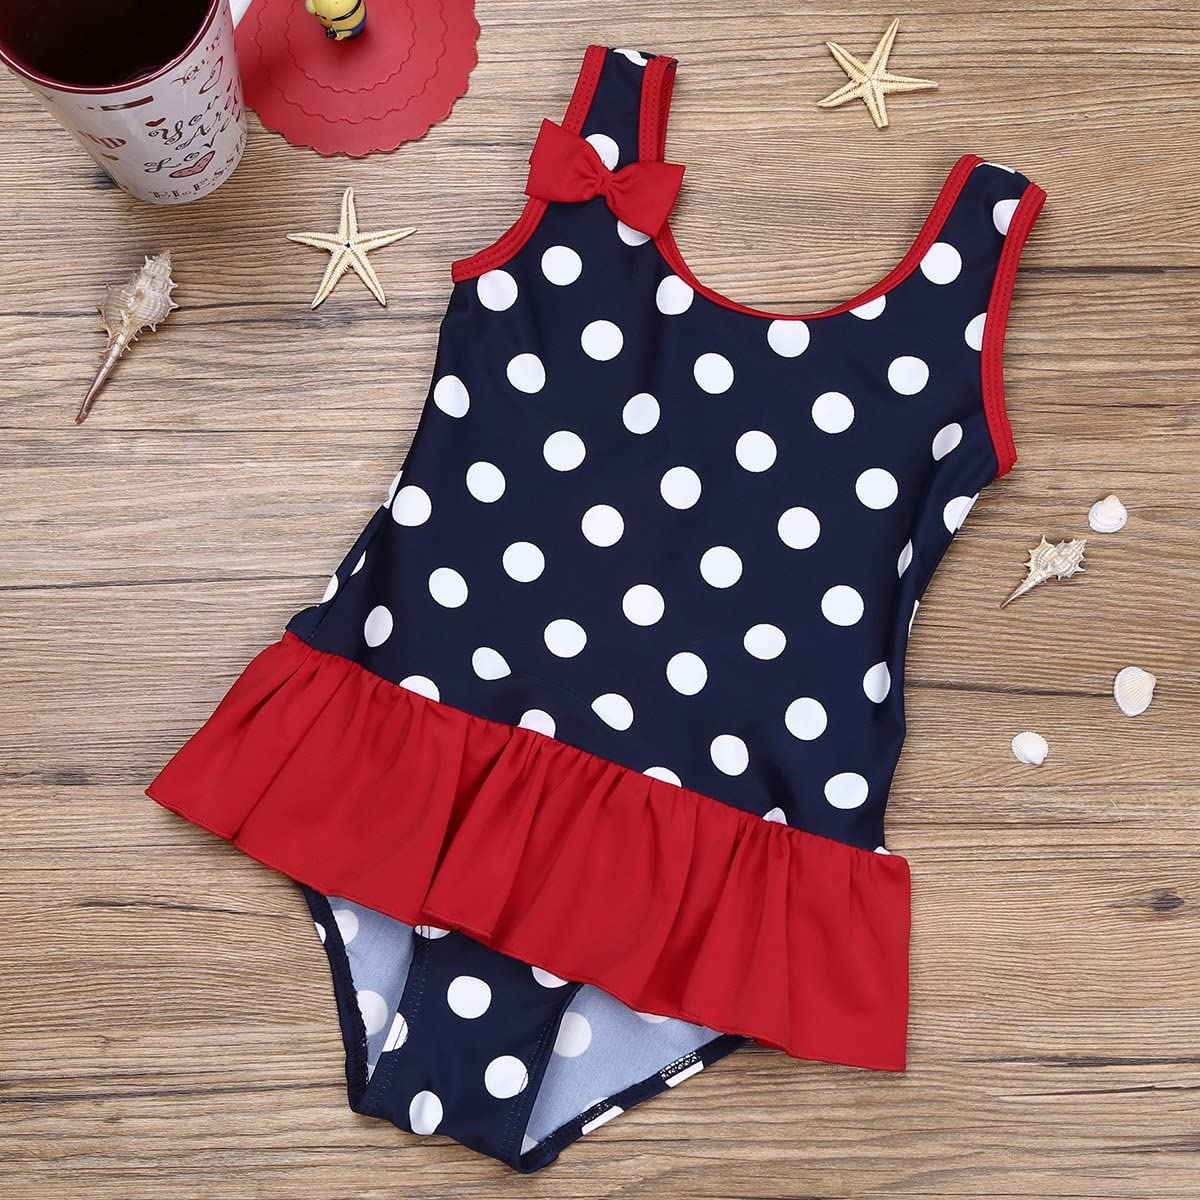 dPois Toddler Baby Girls One Piece Polka Dots Swimsuit Camisole All-Over with Ruffles Bikini Swimwear Bathing Suit